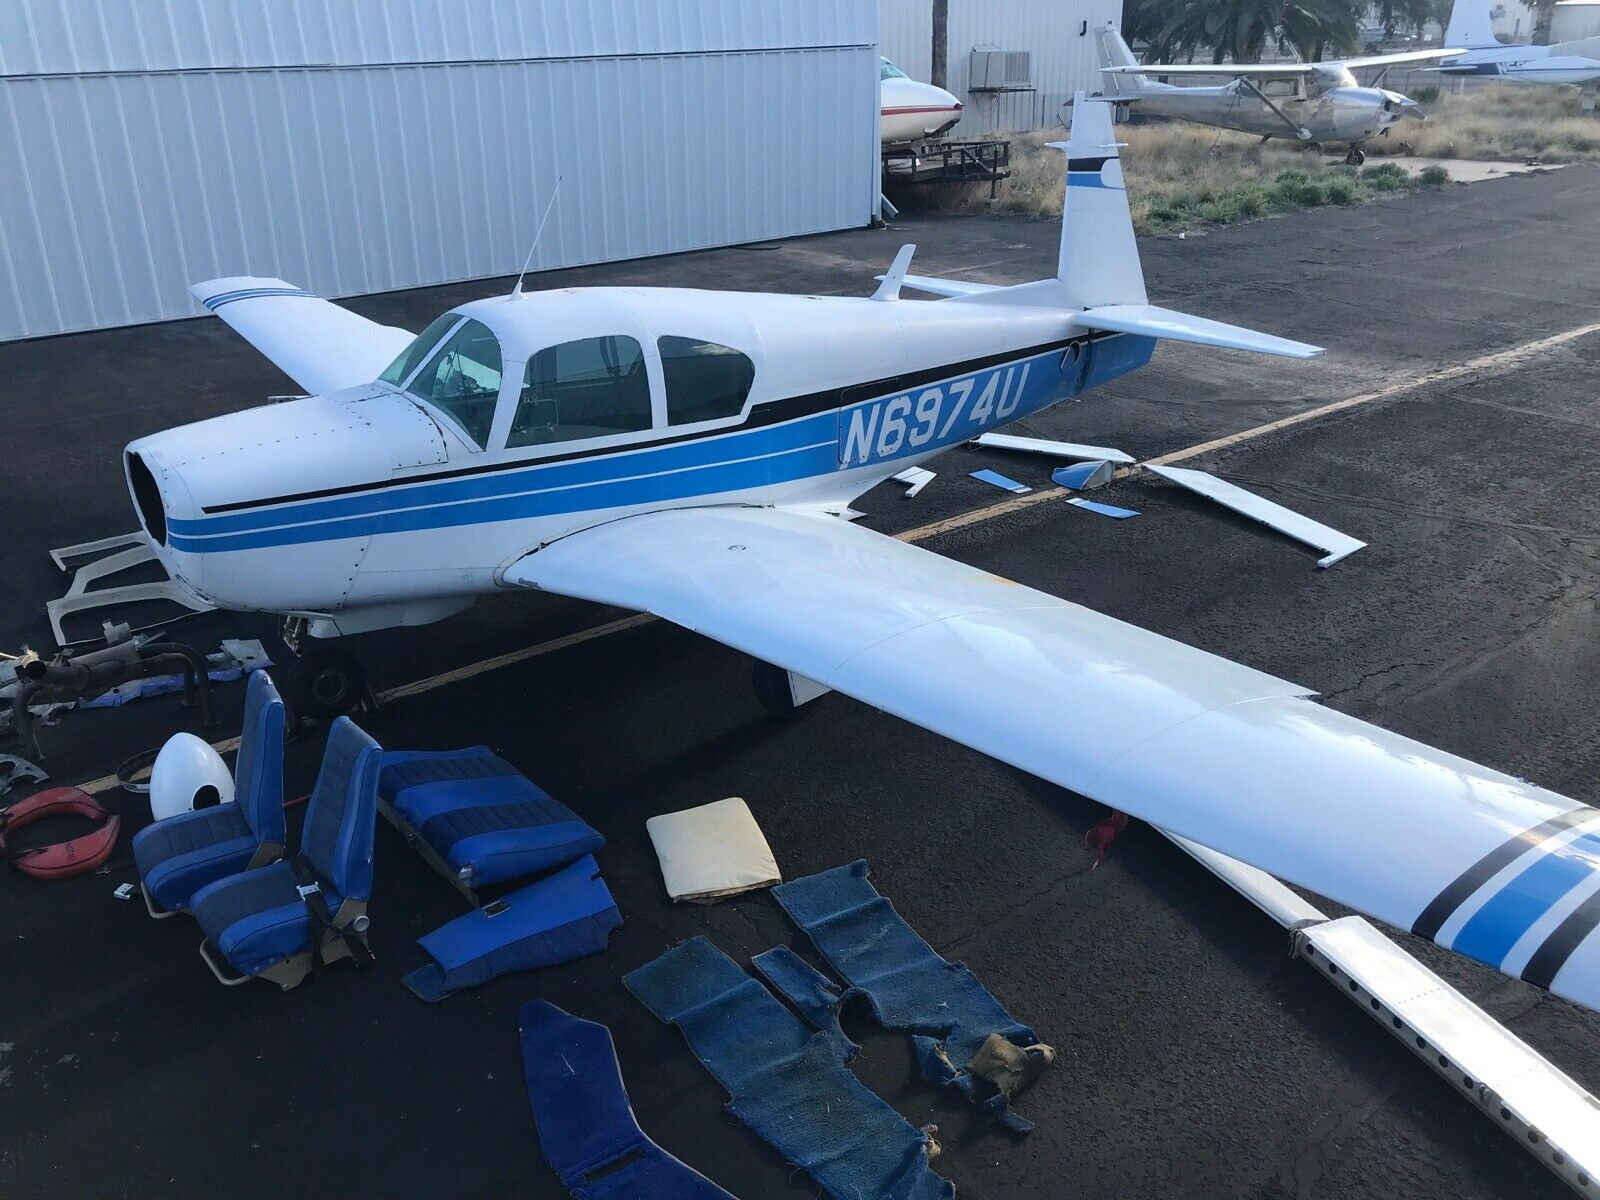 Undamaged 1964 Mooney M20E Project Aircraft for sale